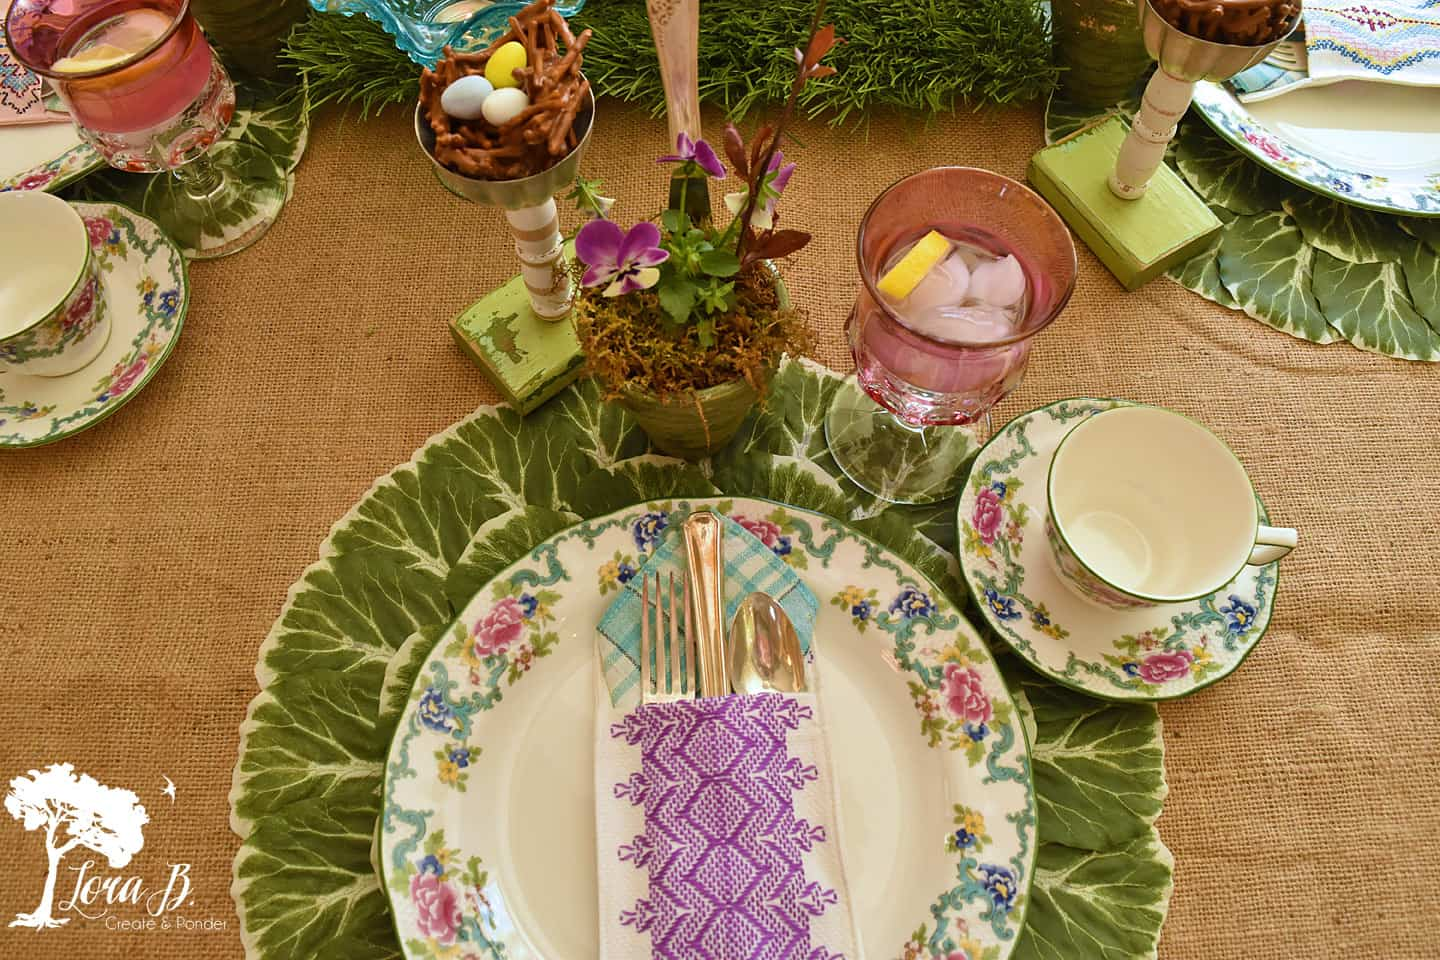 Springtime table setting featuring vintage elements